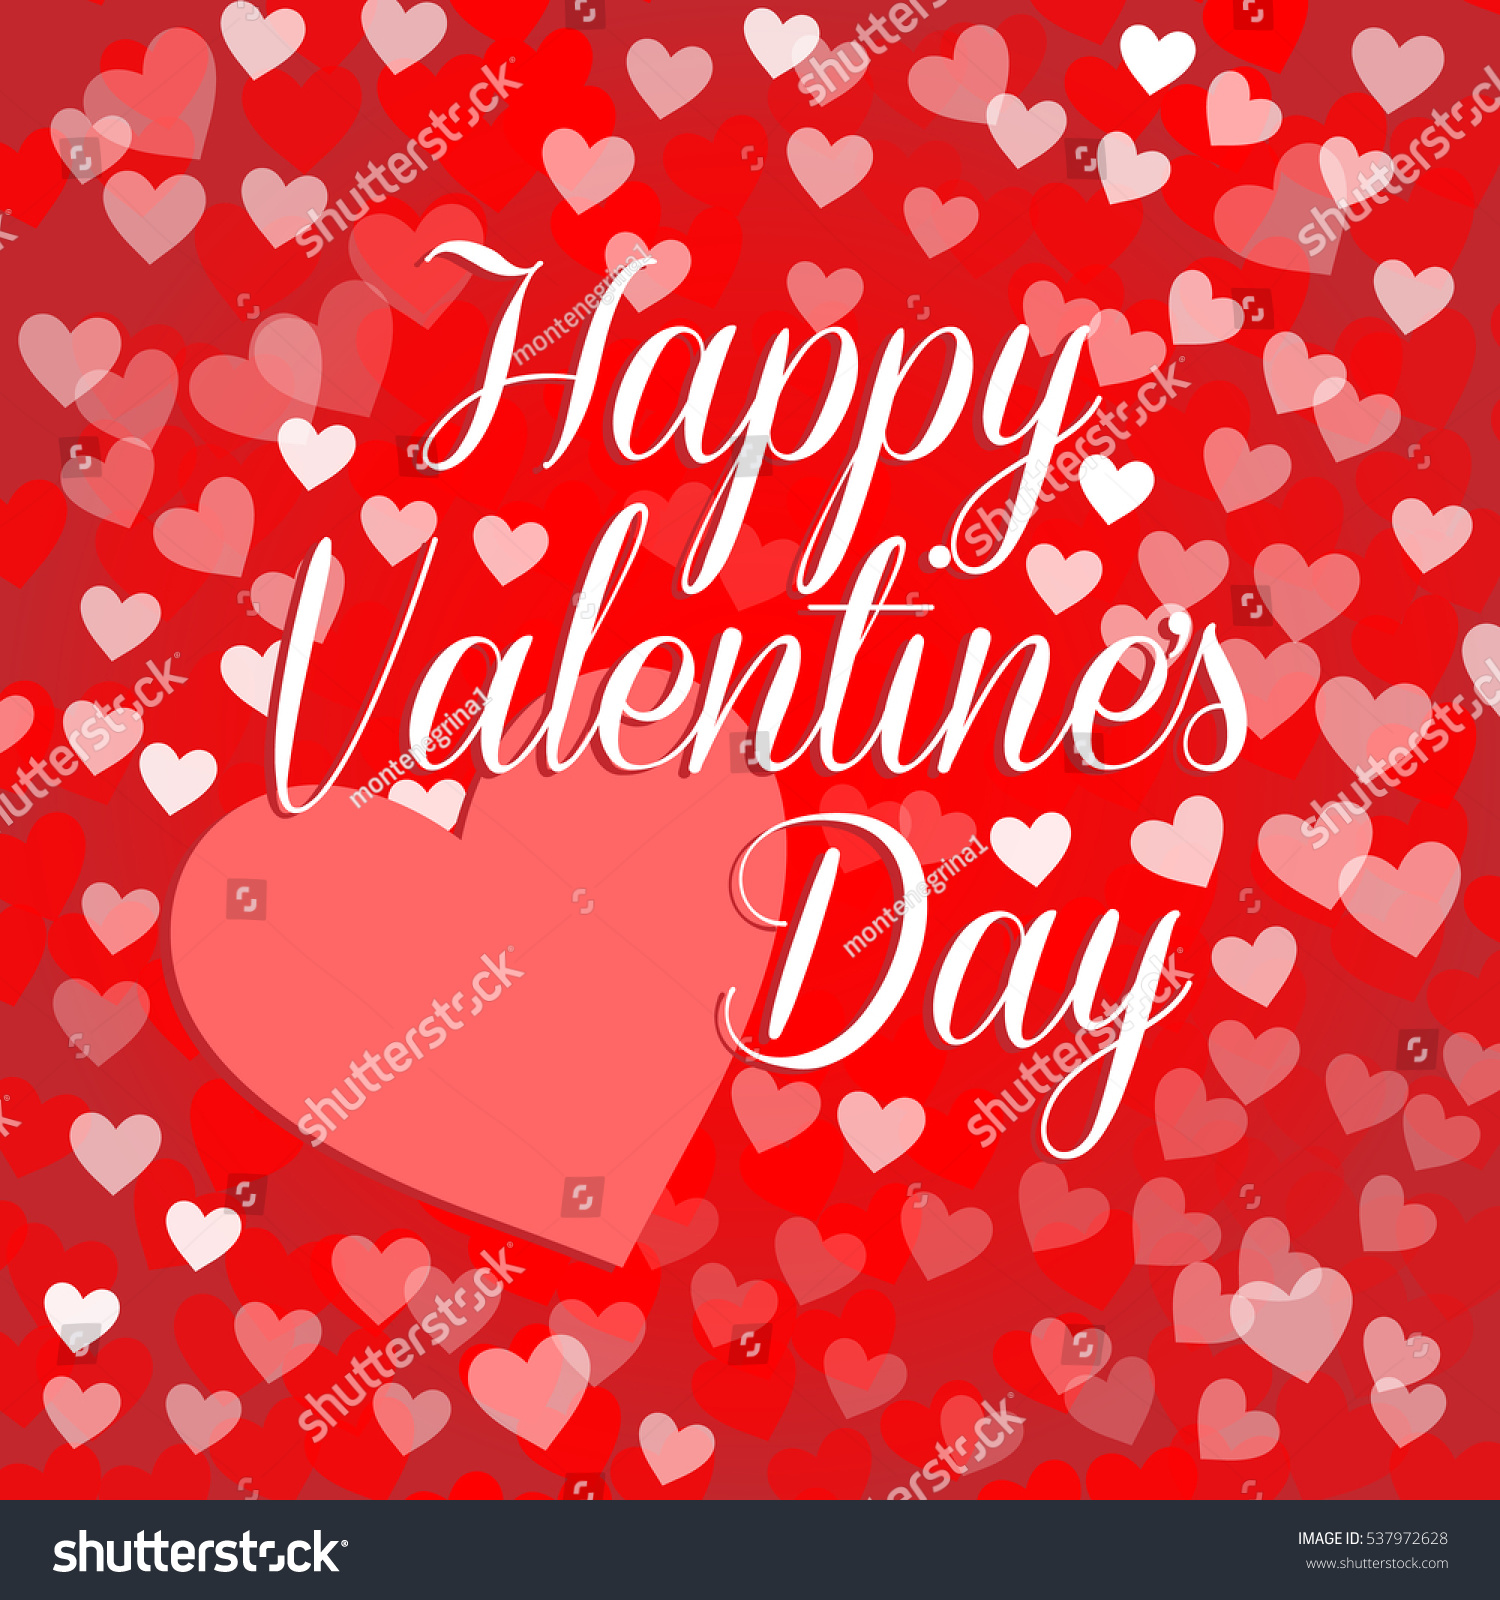 Vector happy valentines card big heart stock vector 537972628 vector happy valentines card with big heart and red color background with small hearts kristyandbryce Images